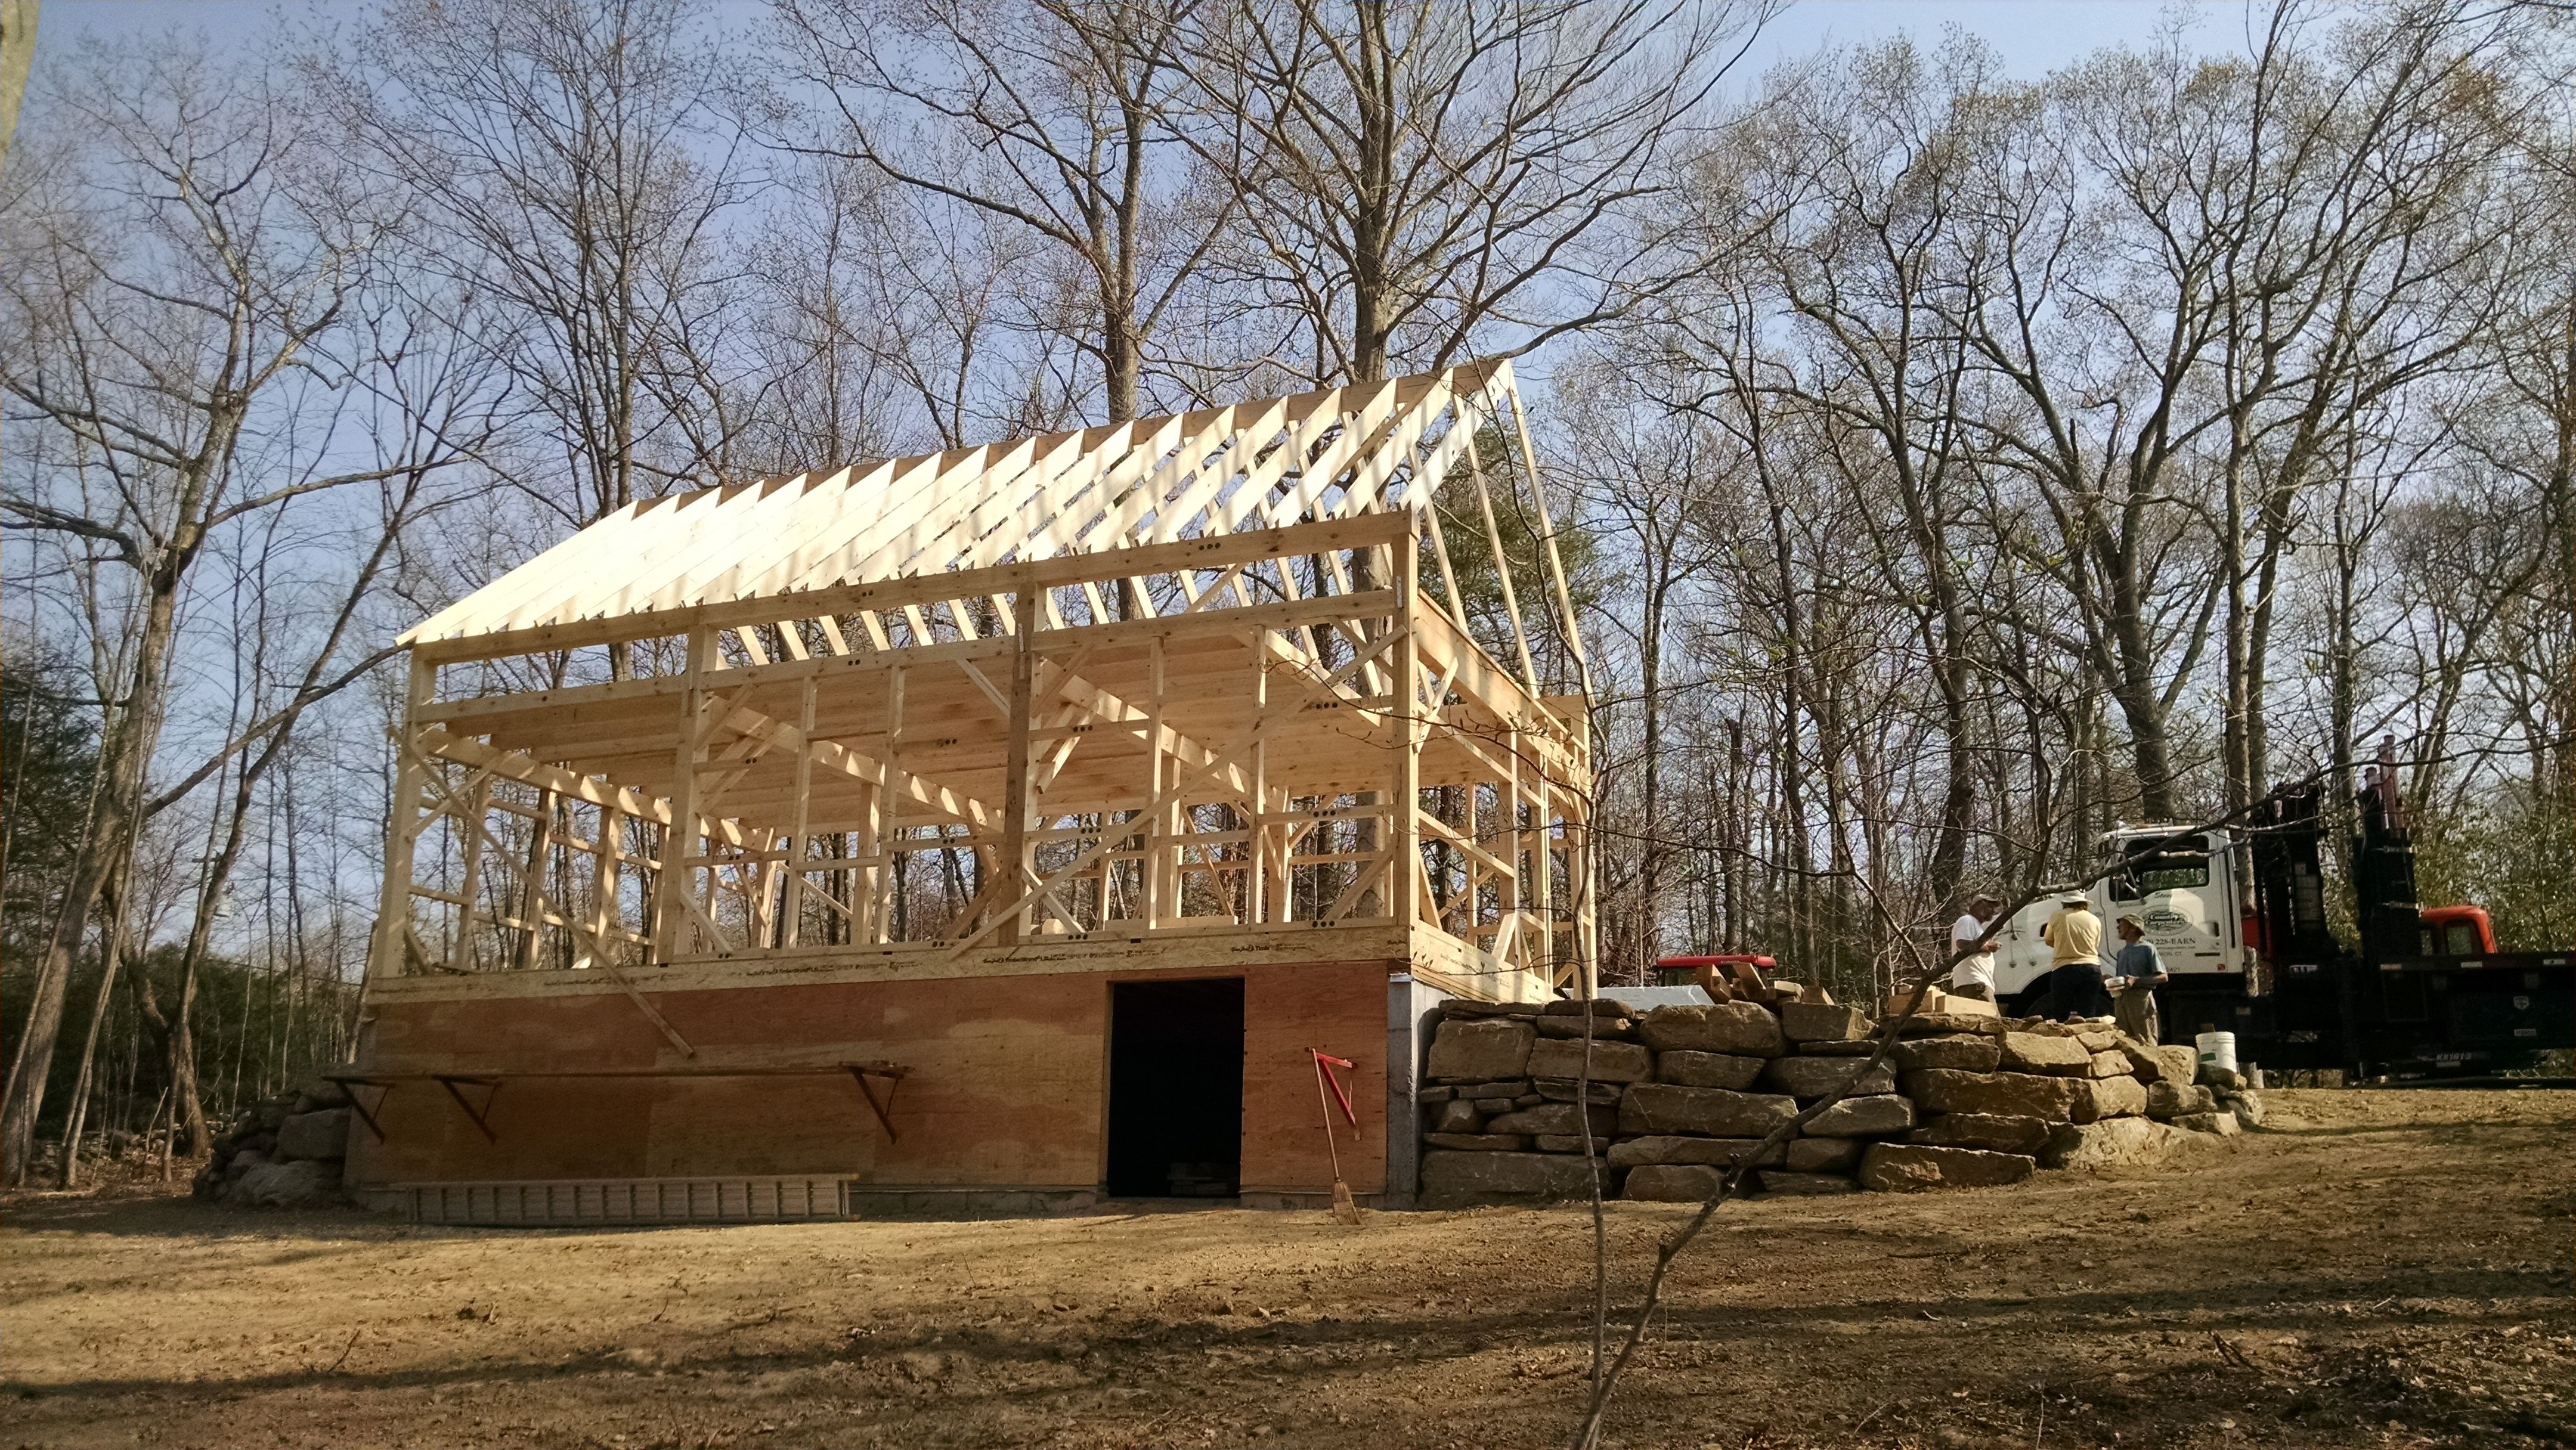 Our 24 X 36 1 1 2 Story Barn Www Countrycarpenters Com Bank Barn House Exterior Small Barns